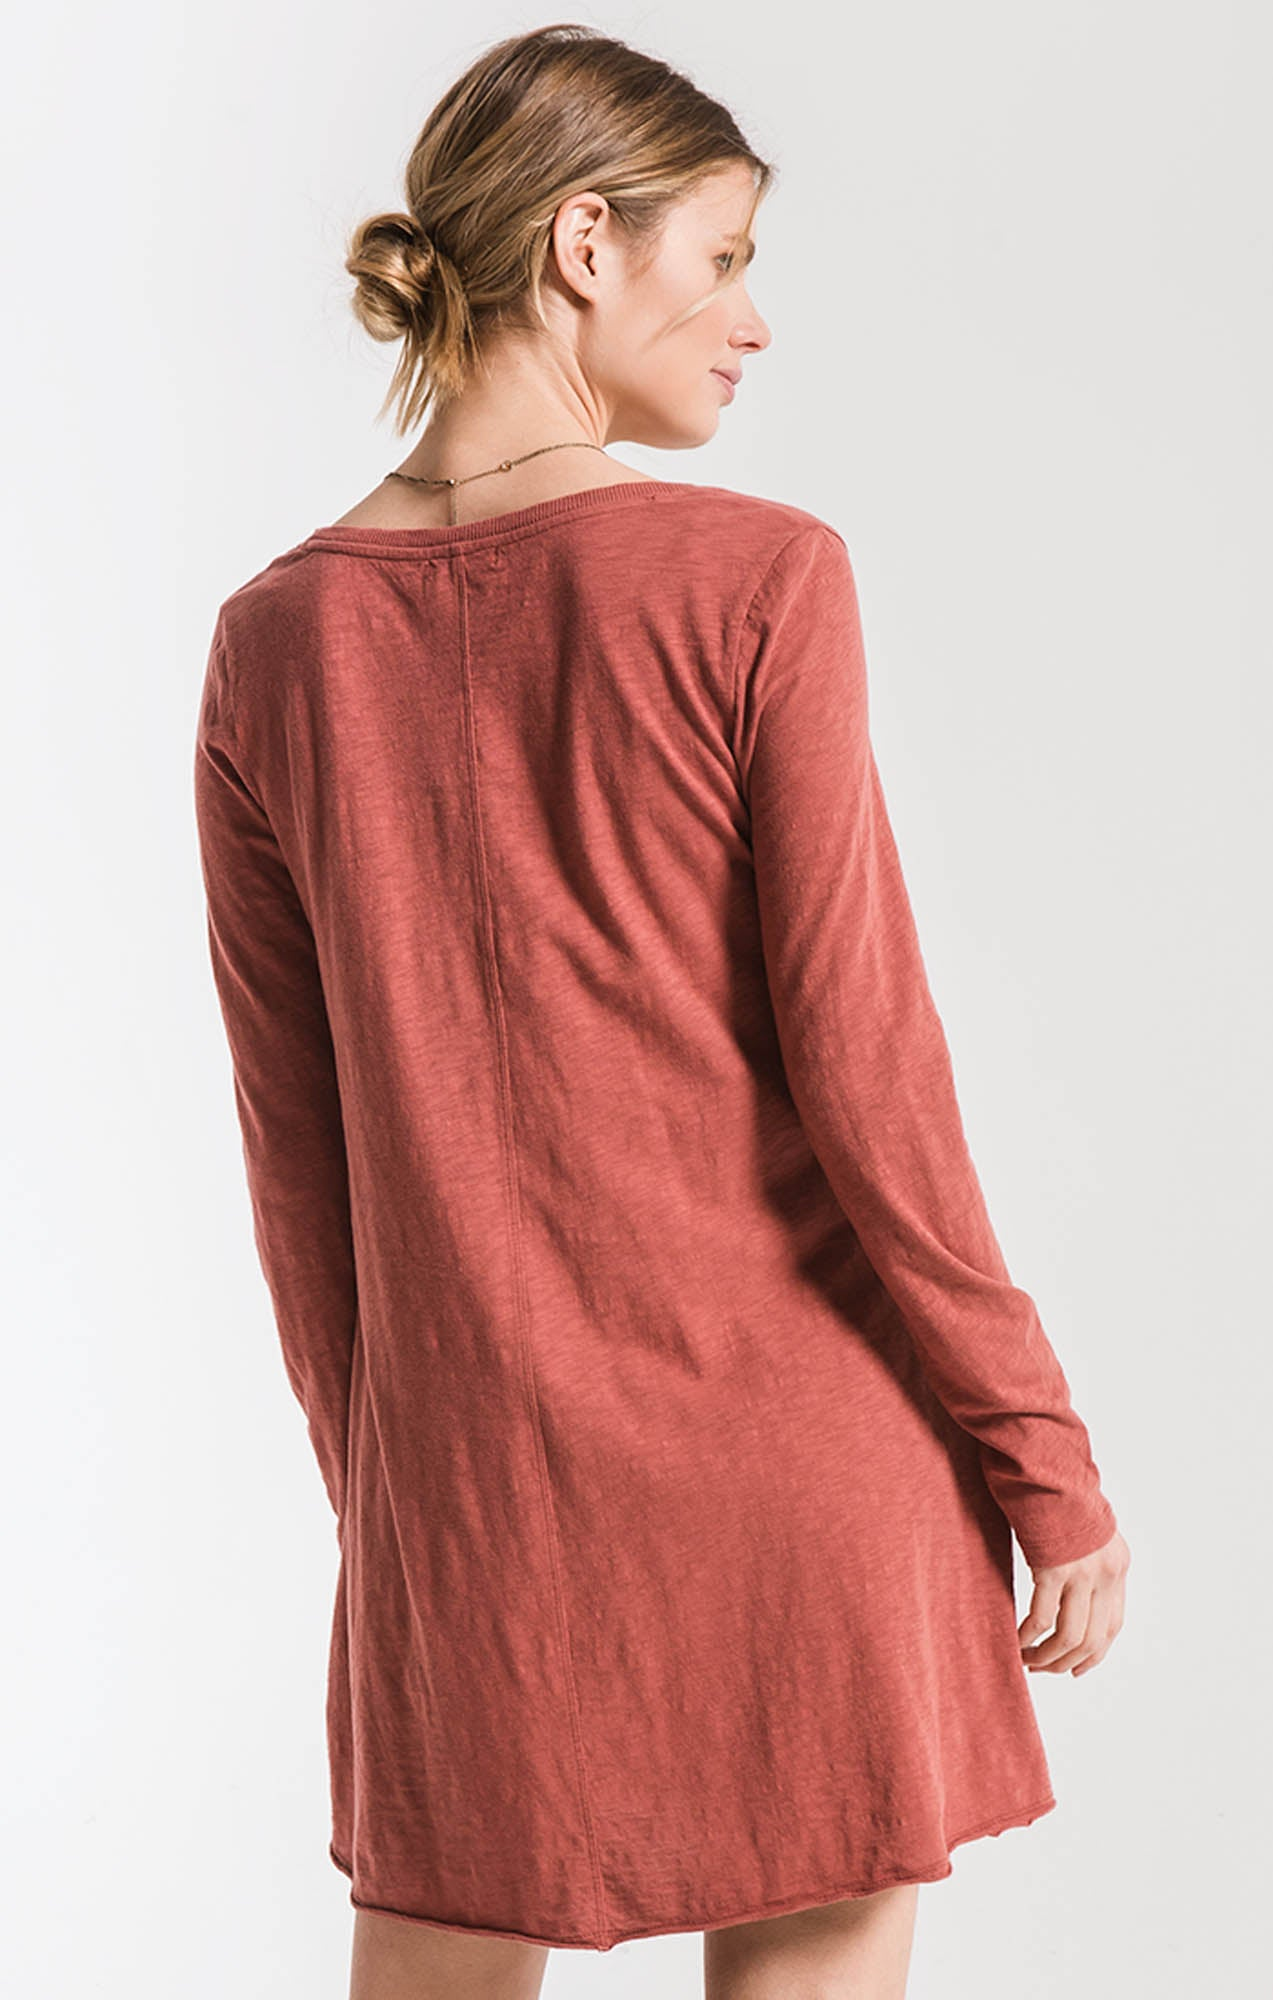 Tops The Cotton Slub Clarington Dress Mesa Red